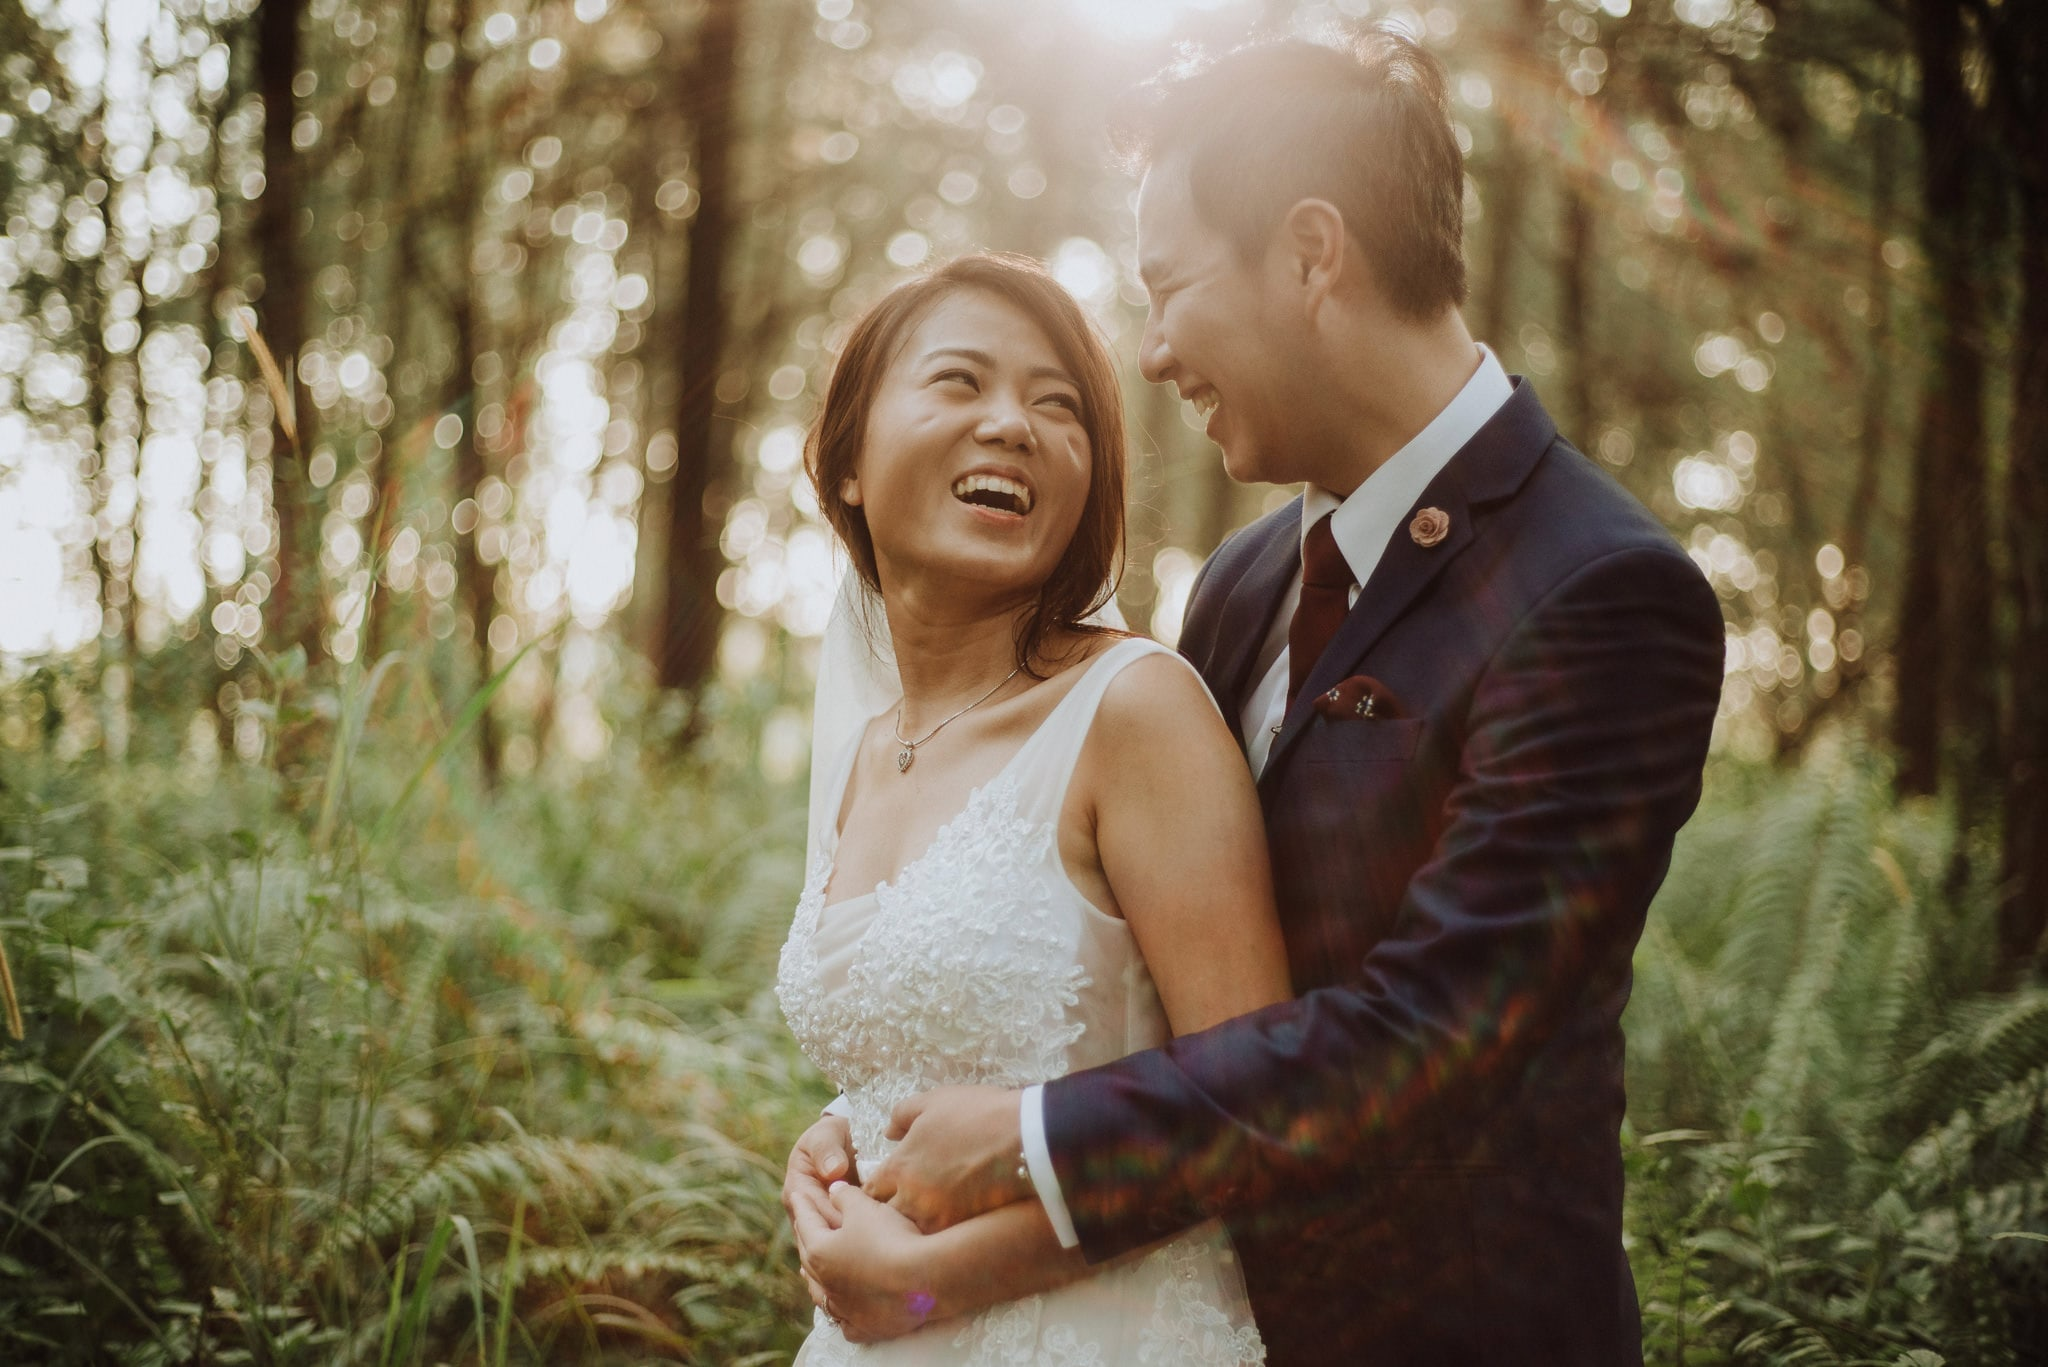 Pre Wedding Photography Packages Singapore